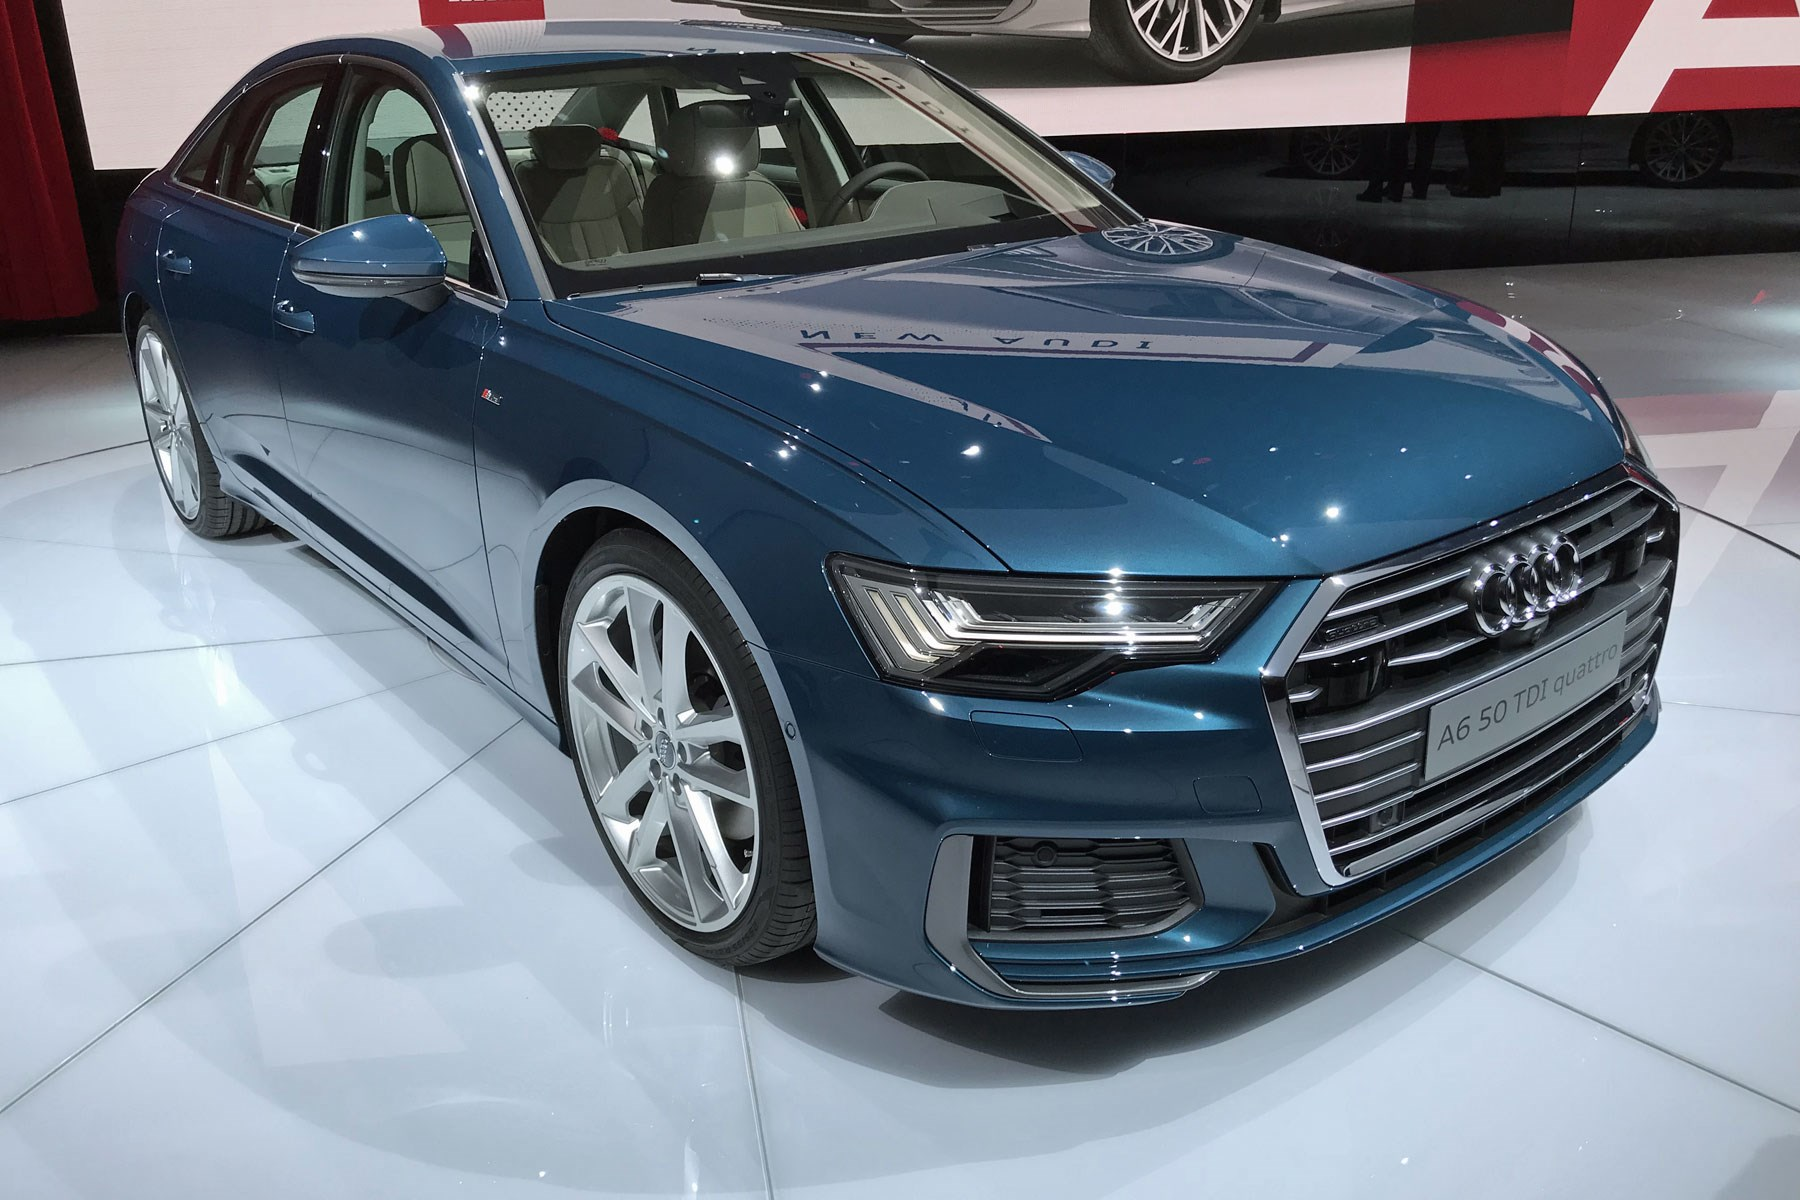 New Audi A6 at the 2018 Geneva motor show ...